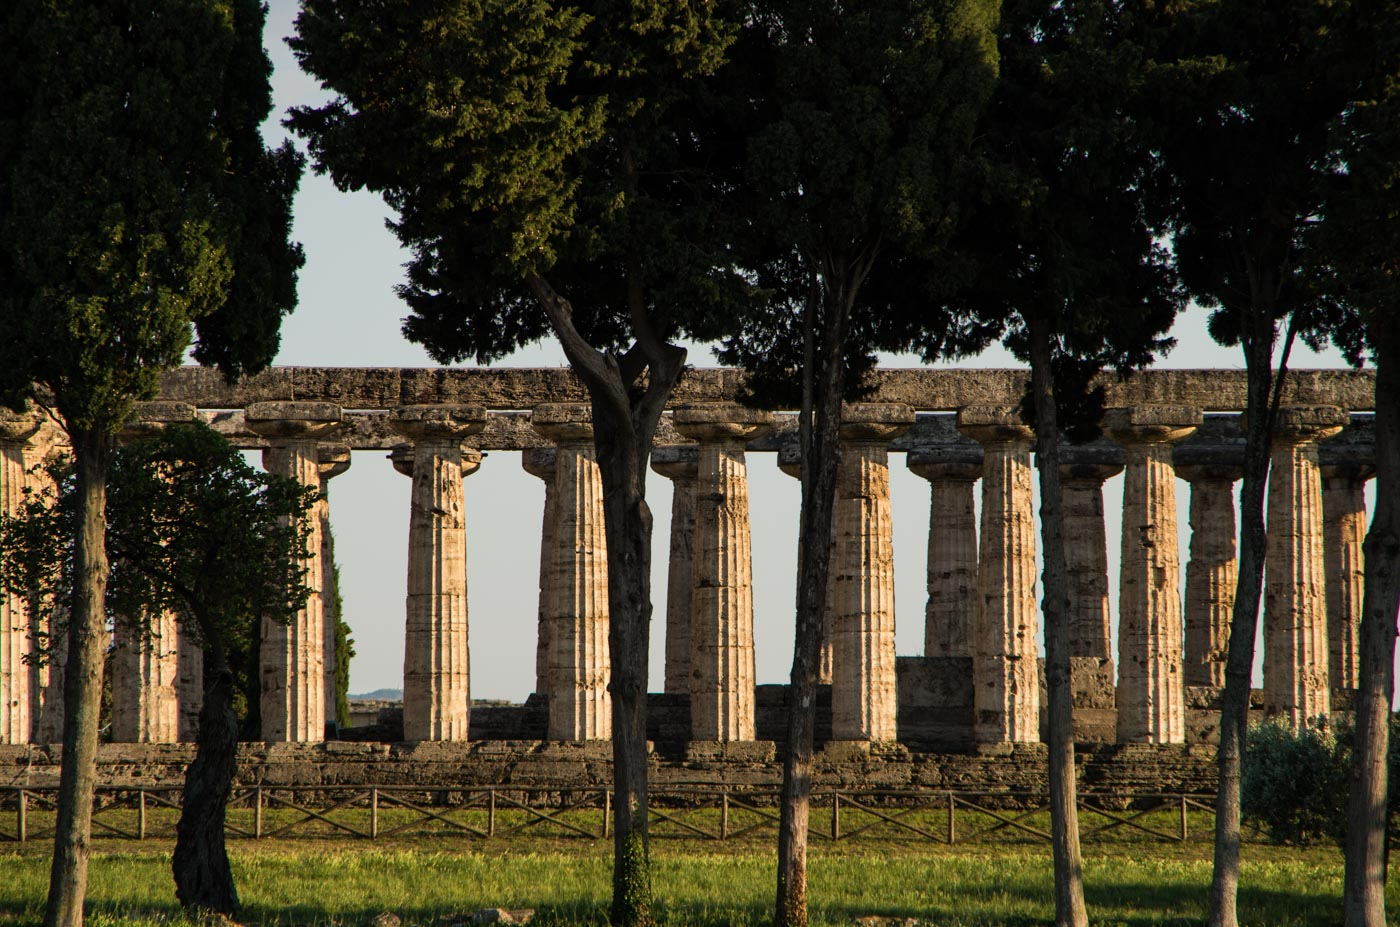 One of the giant temples in the archeological park of Paestum in Campania